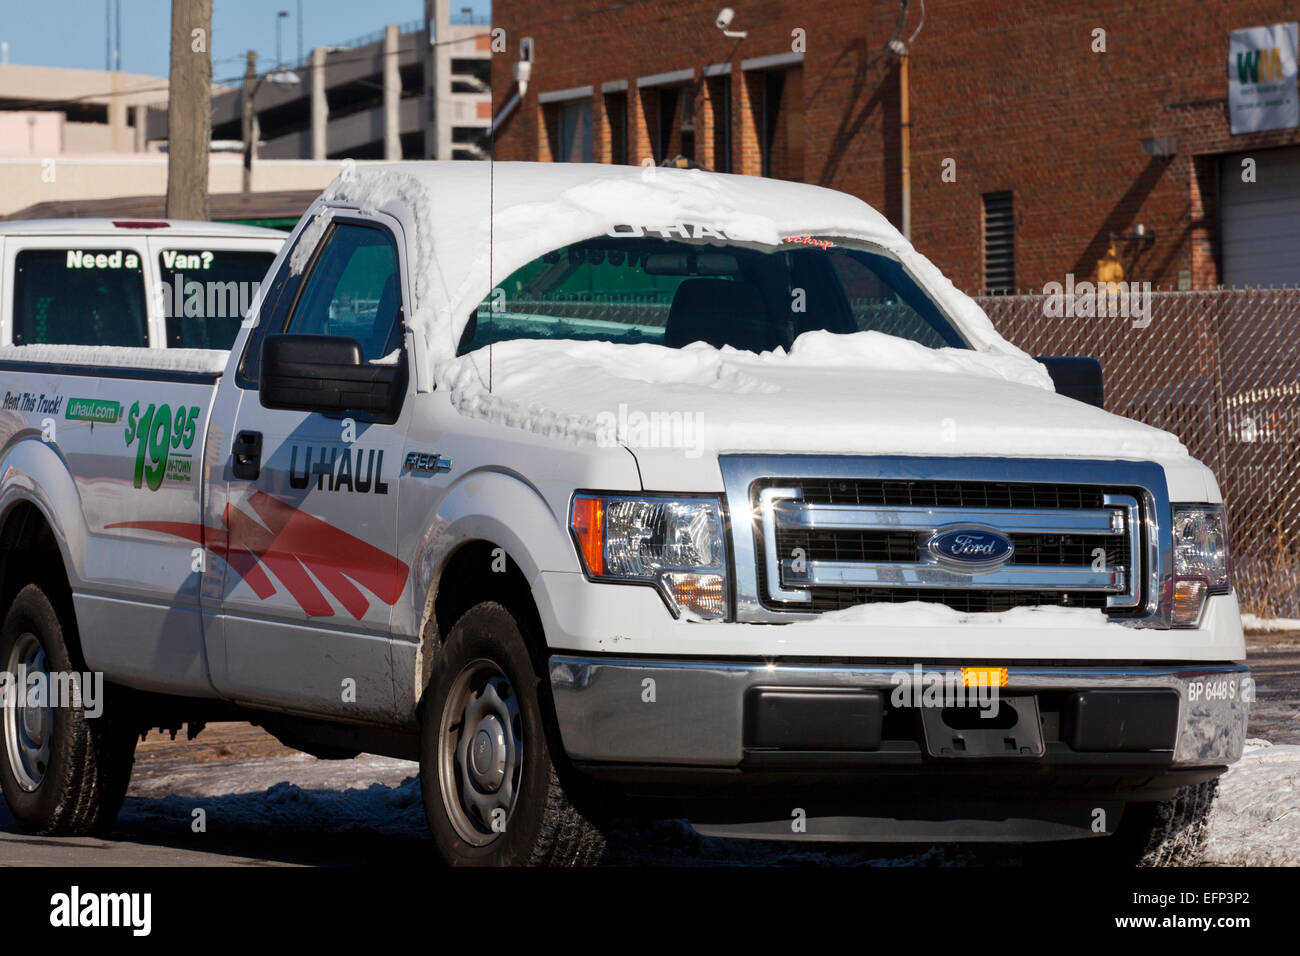 U-Haul pickup truck in winter - USA - Stock Image